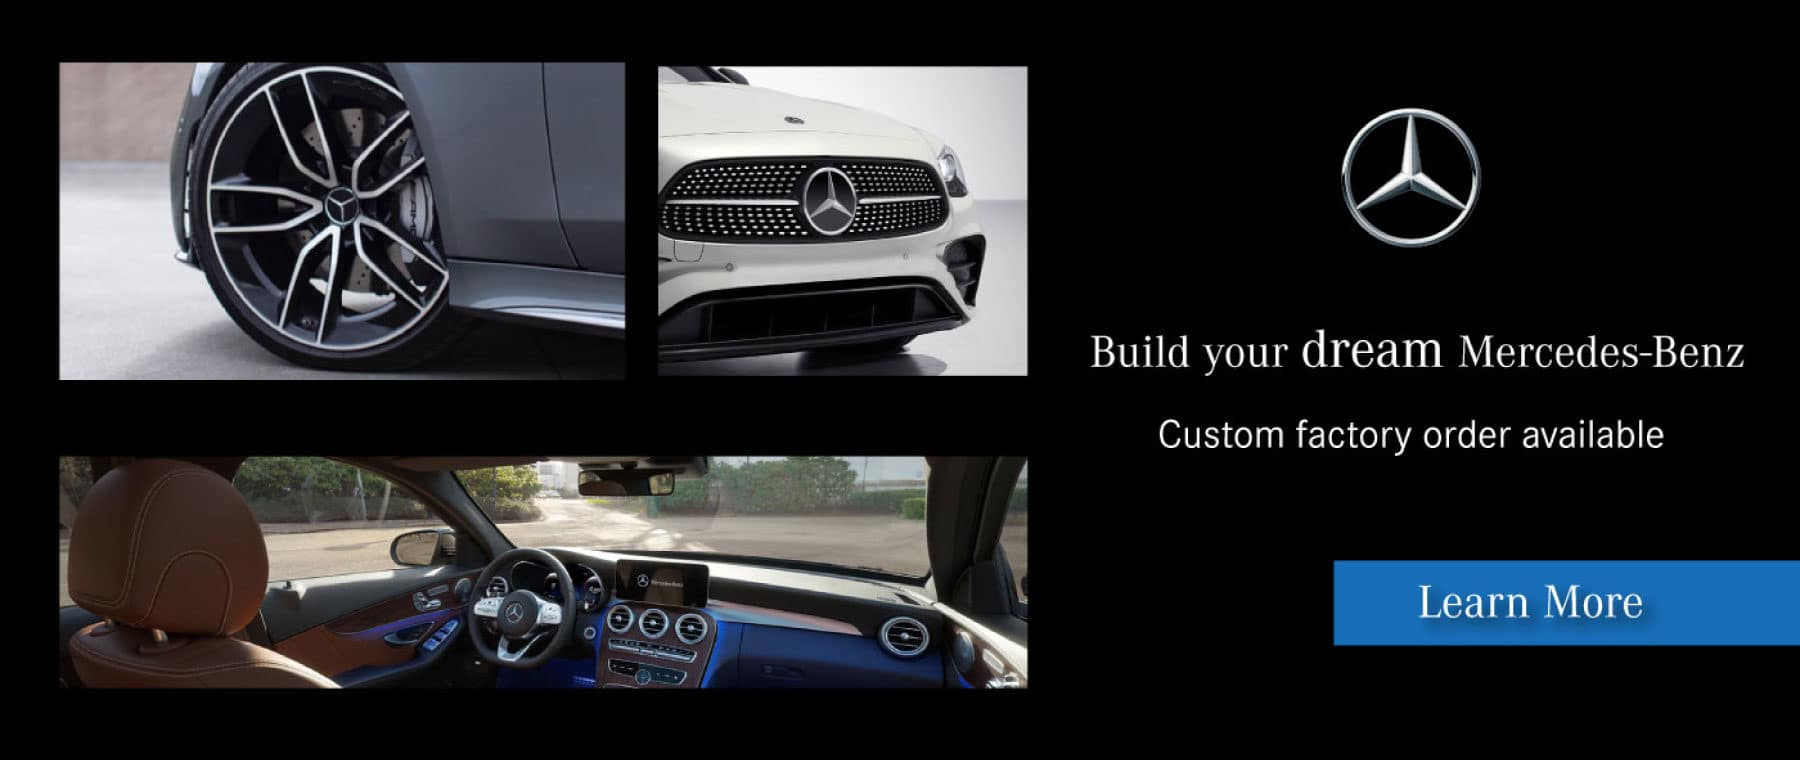 Mercedes-Benz of Chantilly Build Your Own Mercedes